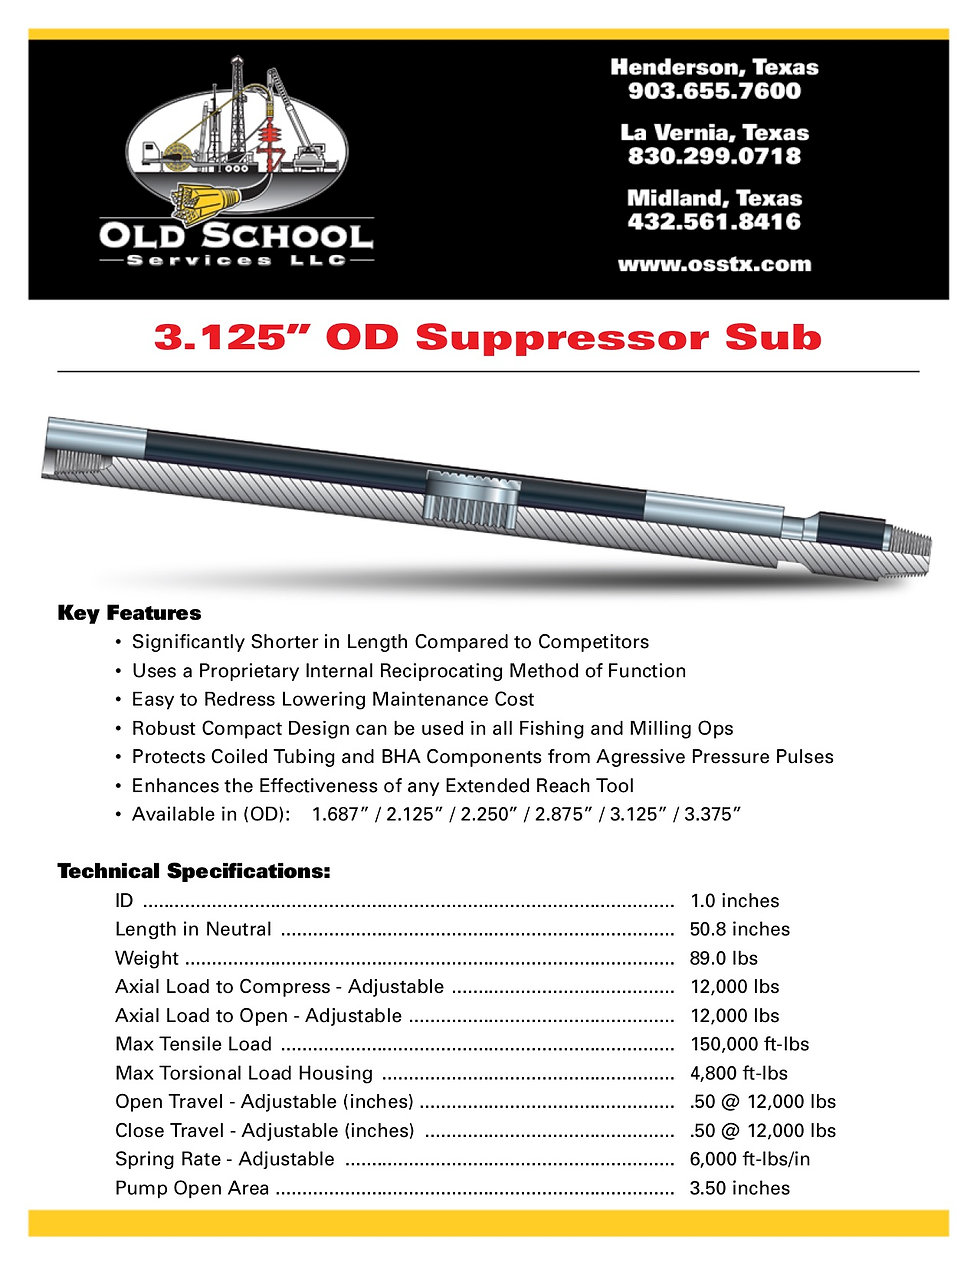 OSS OD PES Suppressor Sub Flier.jpg